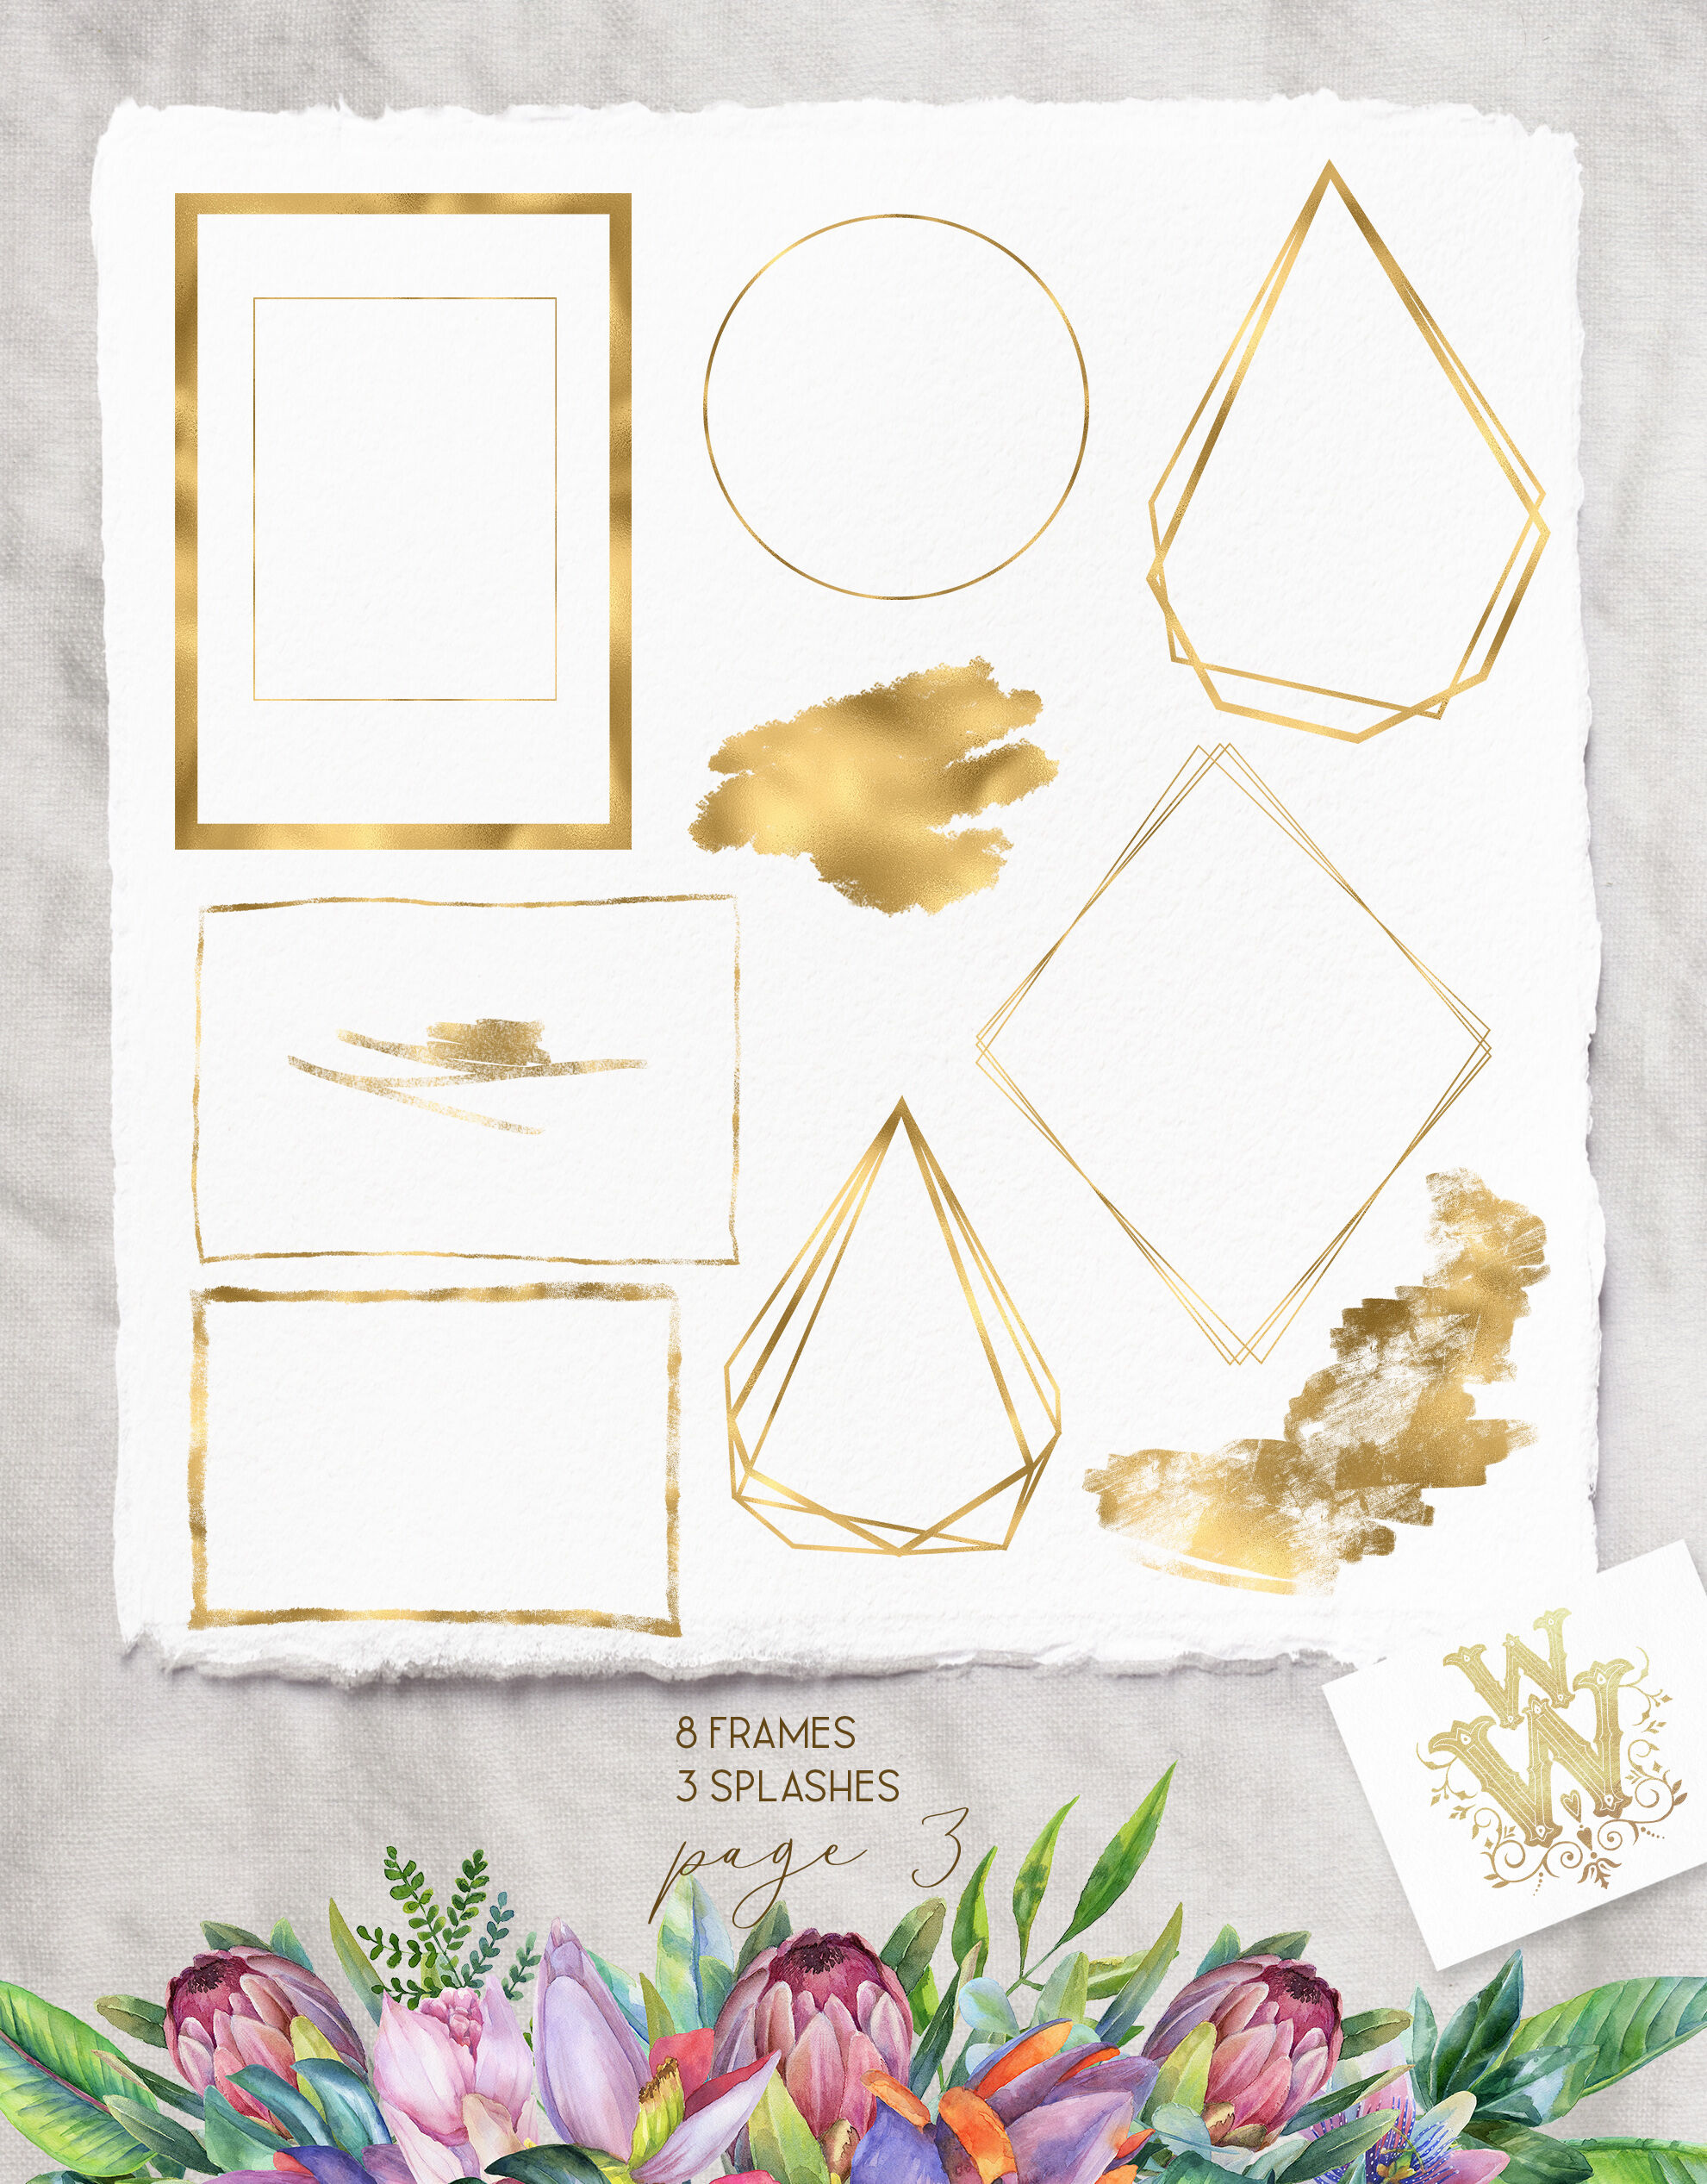 image about Watercolor Floral Border Paper Printable titled Watercolor Floral Clipart Aspects And Compositions - Resume